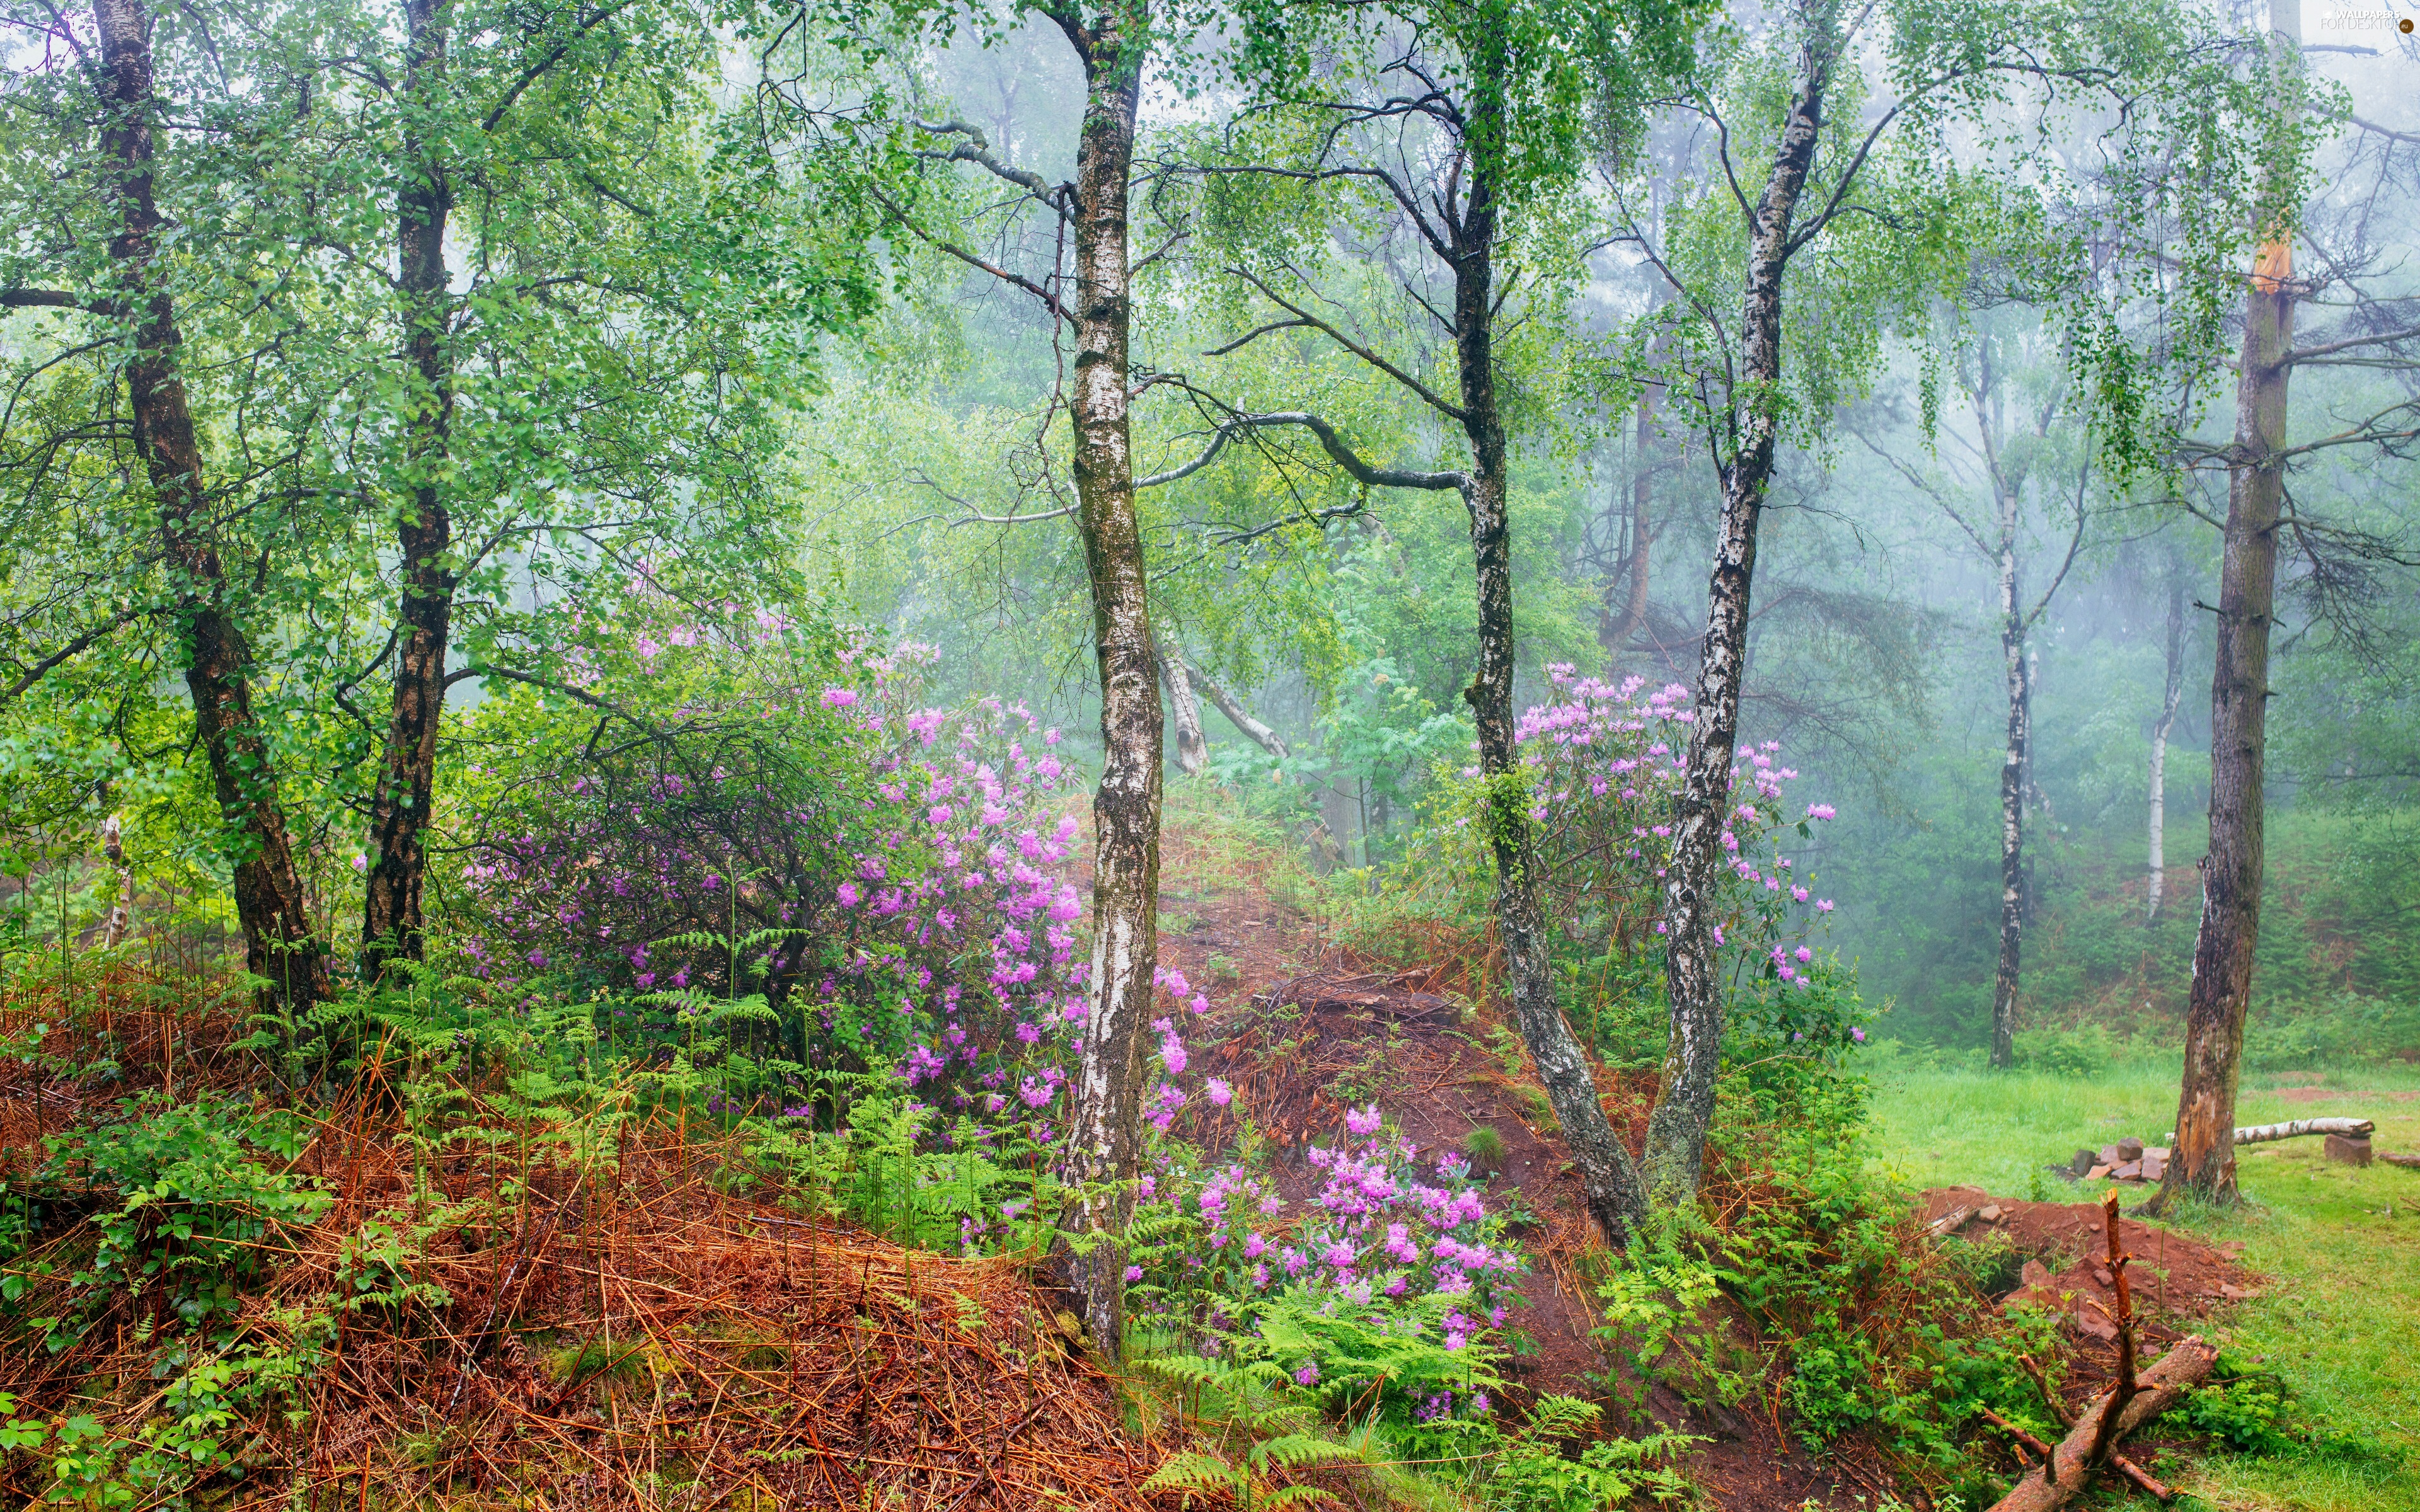 Rhododendron, forest, Leaf, County Derbyshire, Flowers, summer, birch, England, Peak District National Park, Rhododendrons